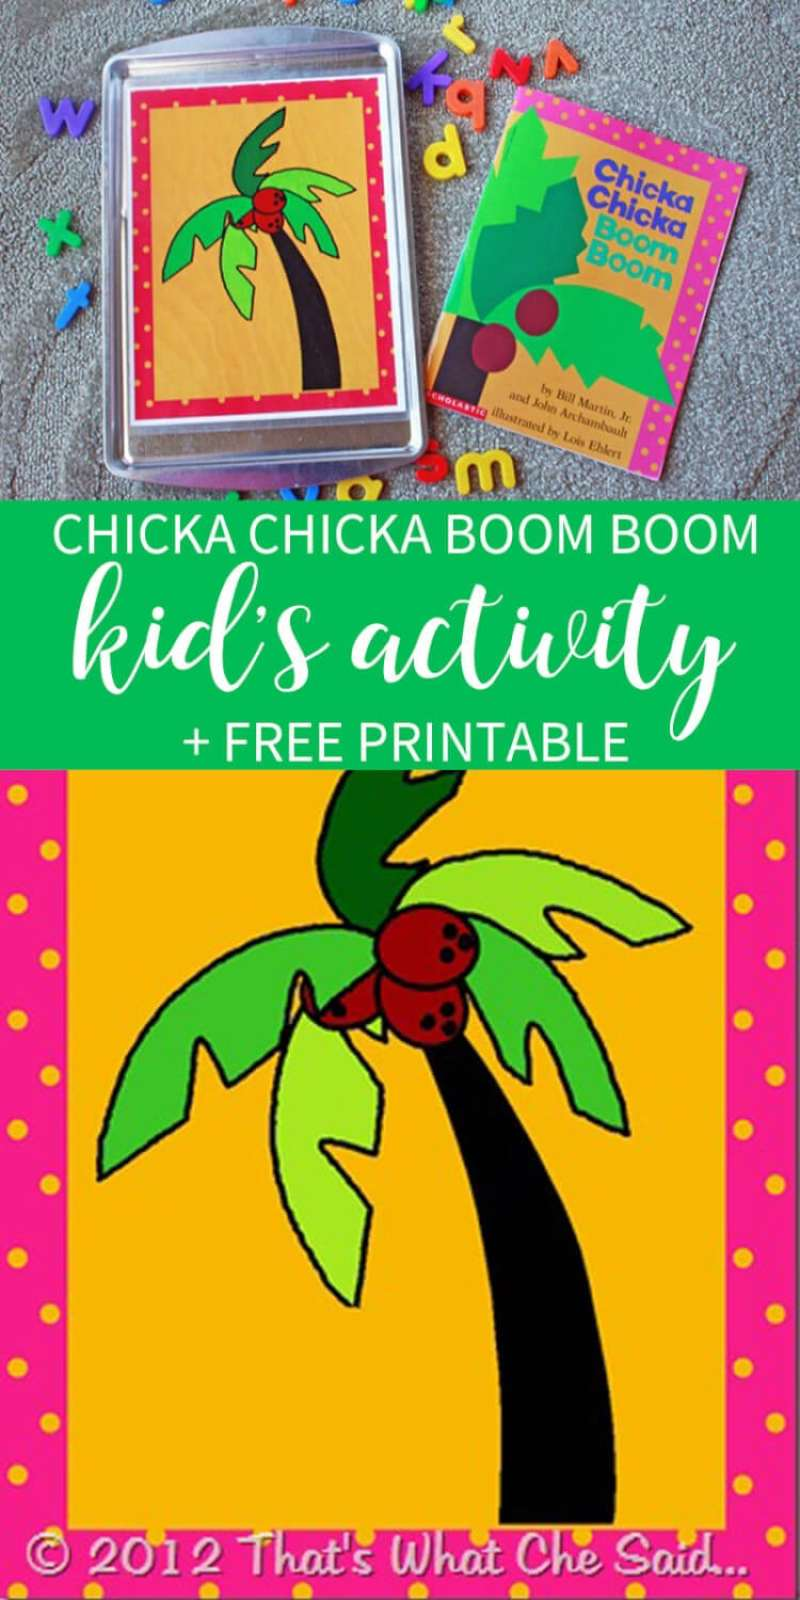 Free Printable of Chicka Chicka Boom Boom Tree for fun kid's activity